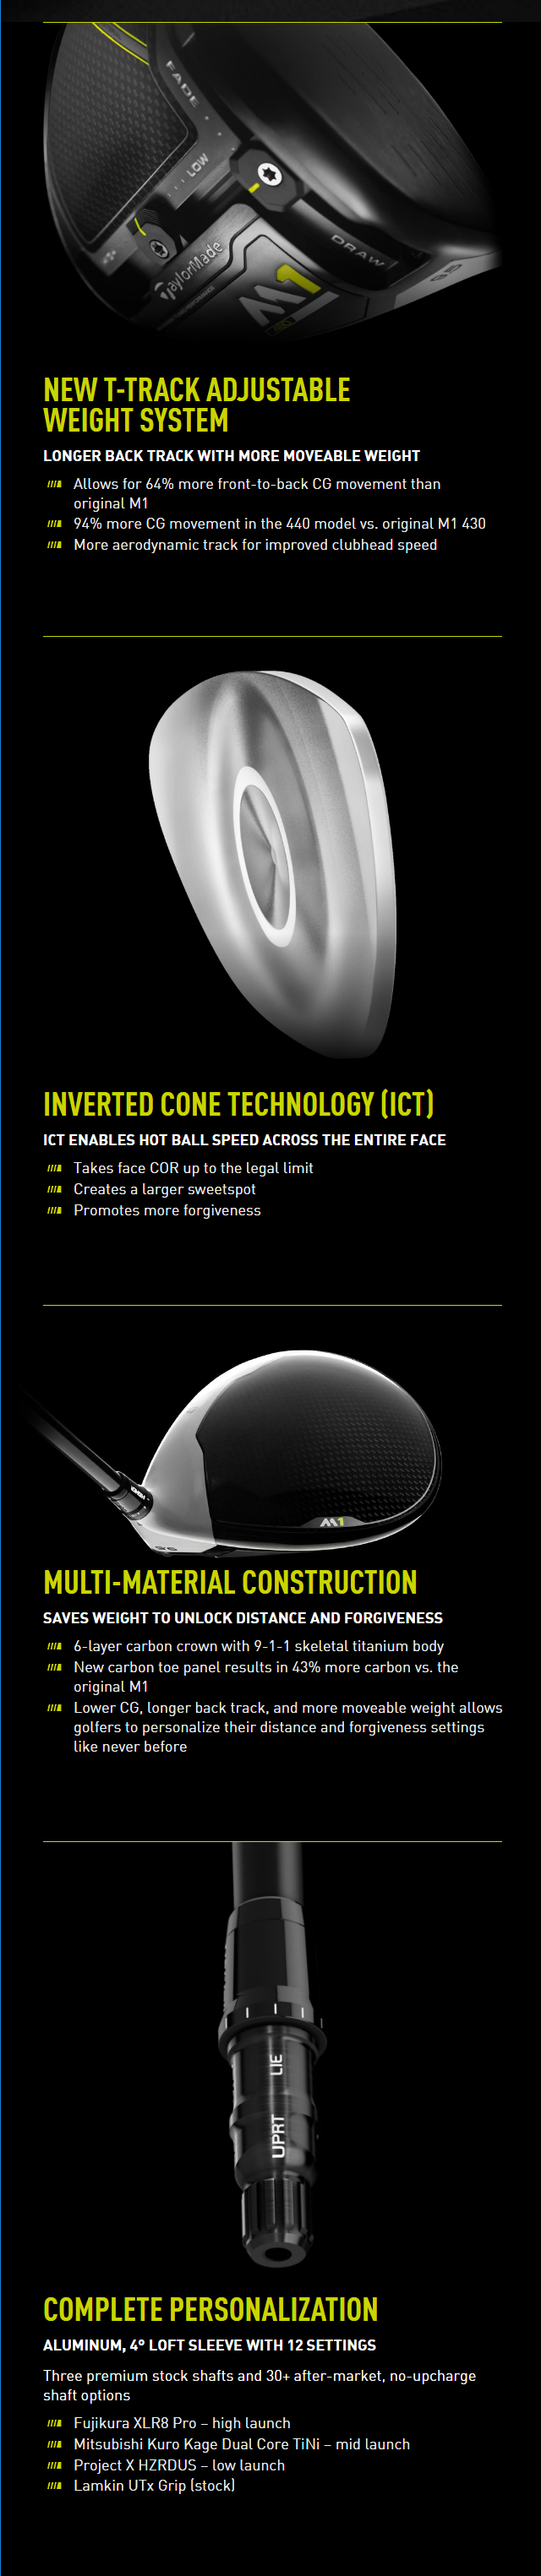 Taylormade New M1 Drivers